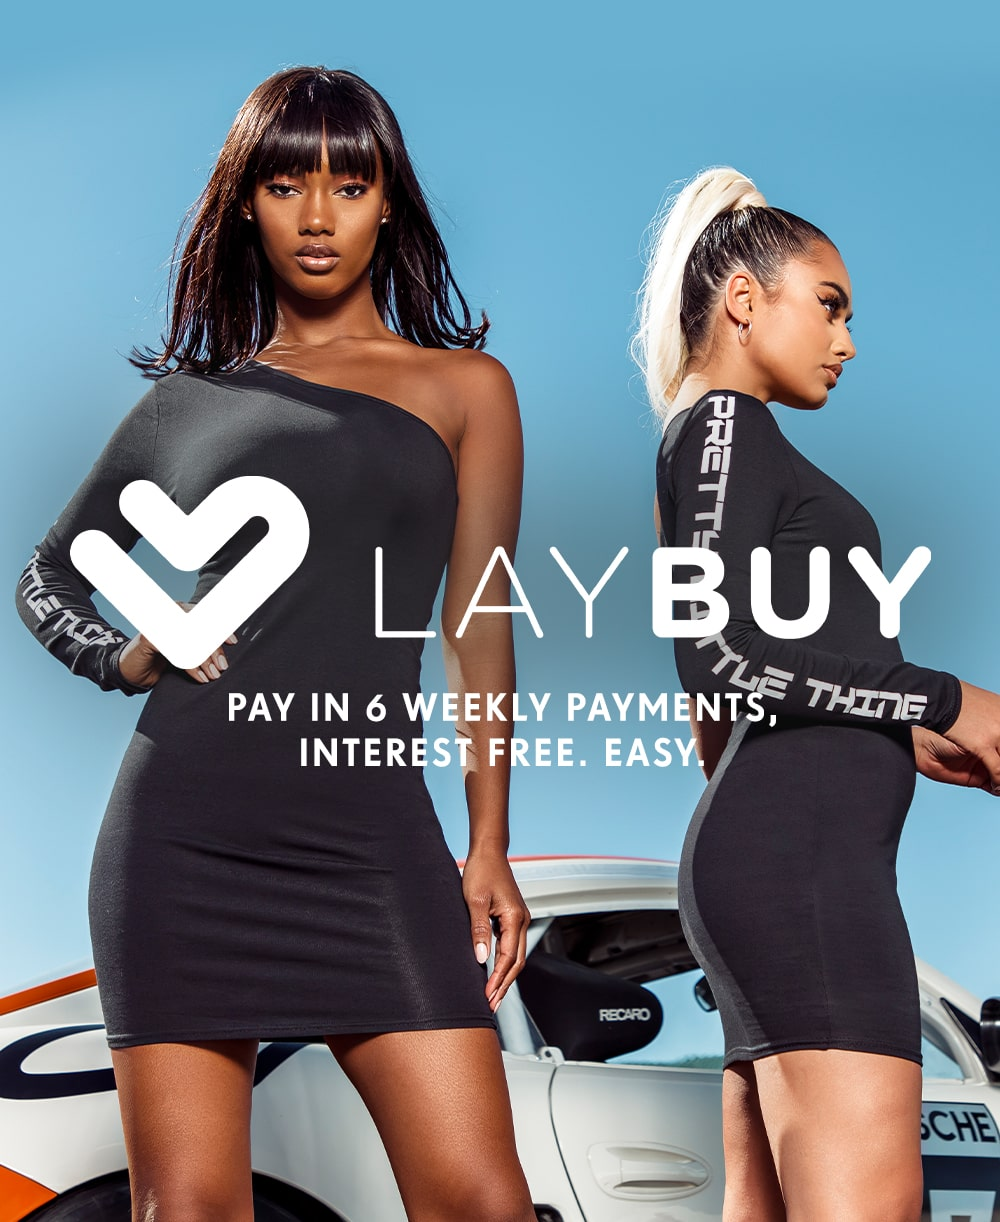 Laybuy Splash Mobile